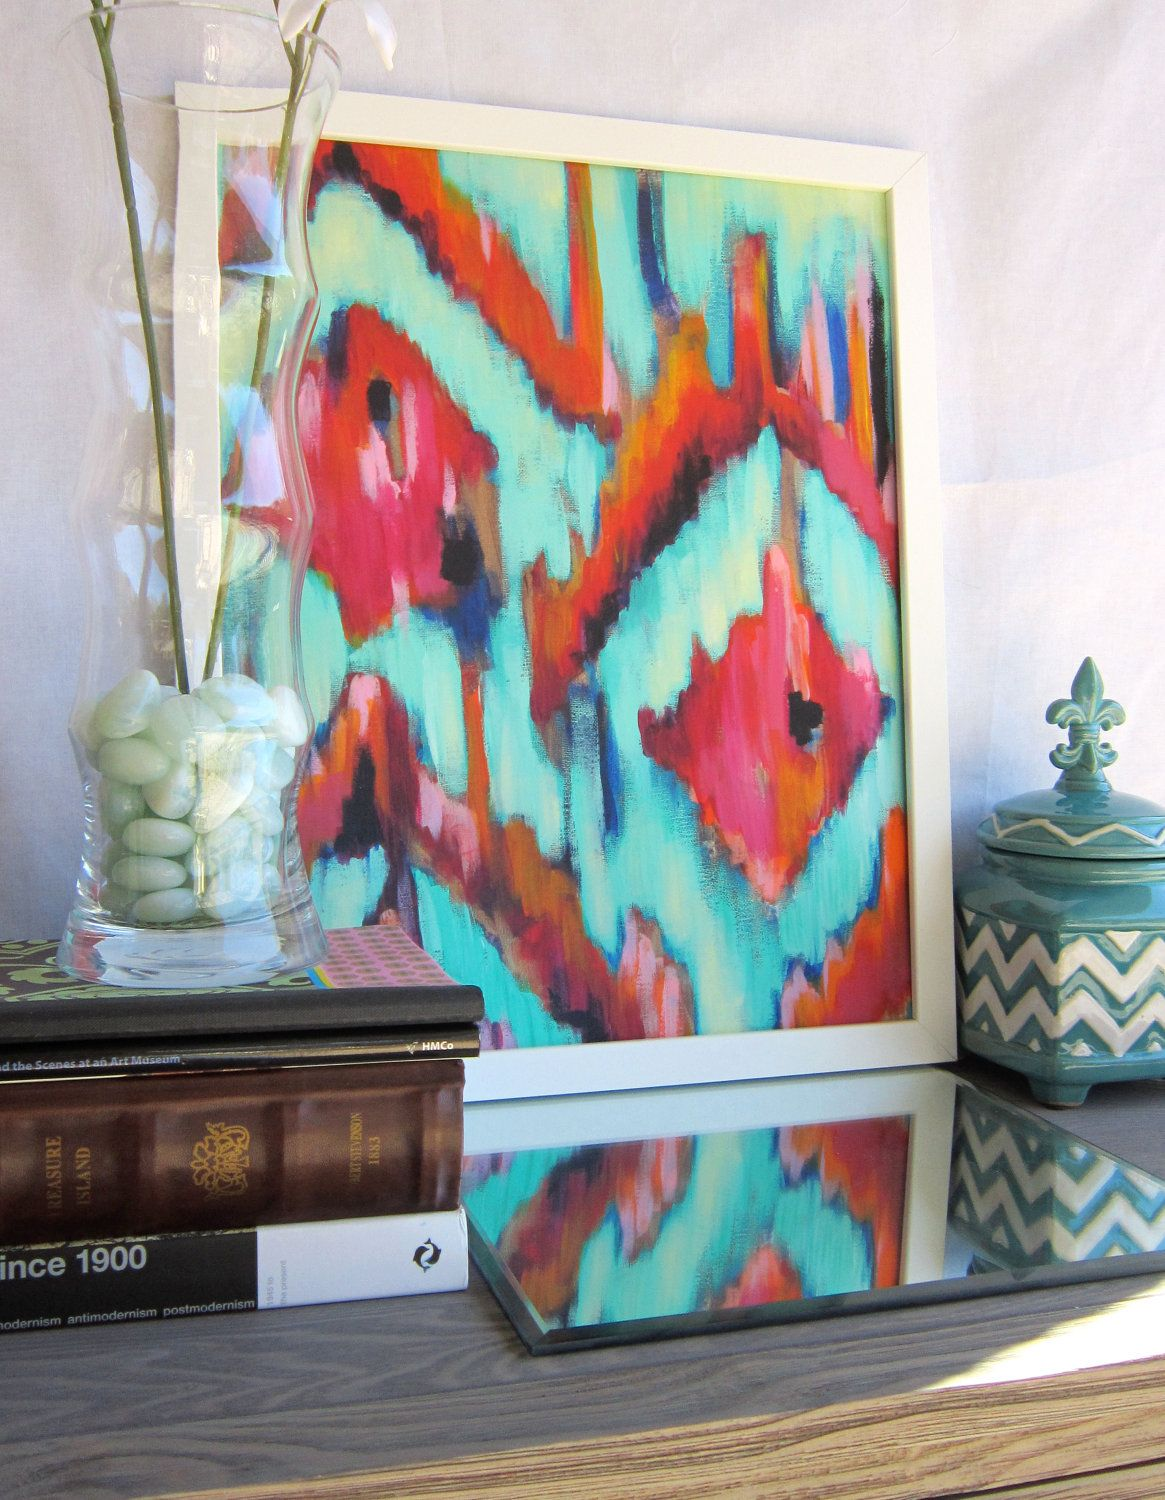 16x20 Artist Painting Print abstract Ikat artwork with turquoise. $60.00, via Etsy.